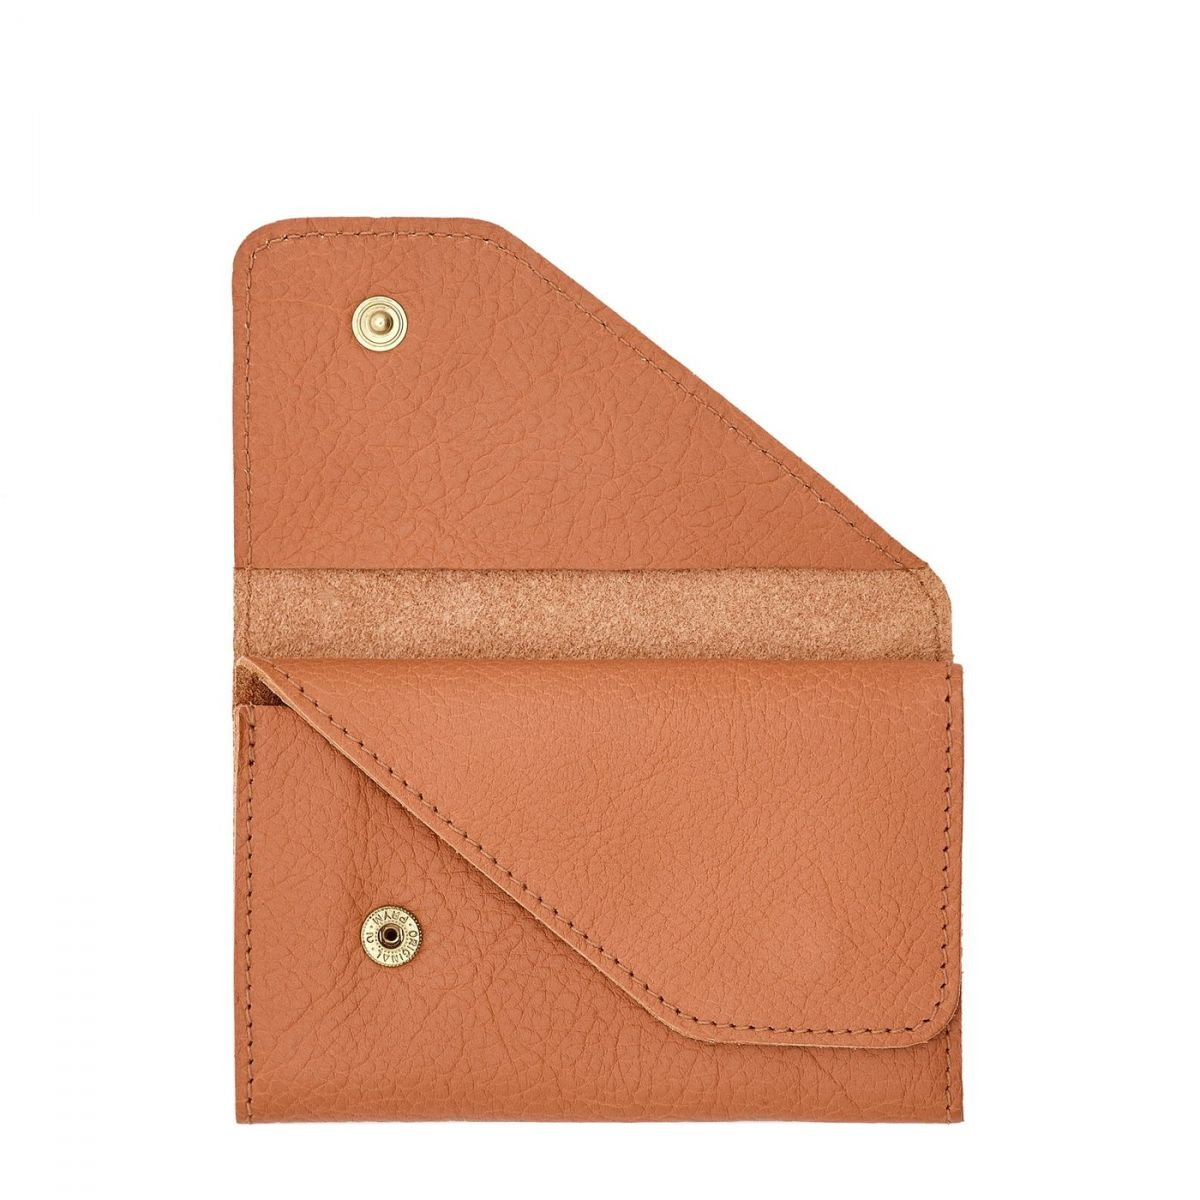 Card Case in Cowhide Leather SCC015 color Pink Pepper | Details